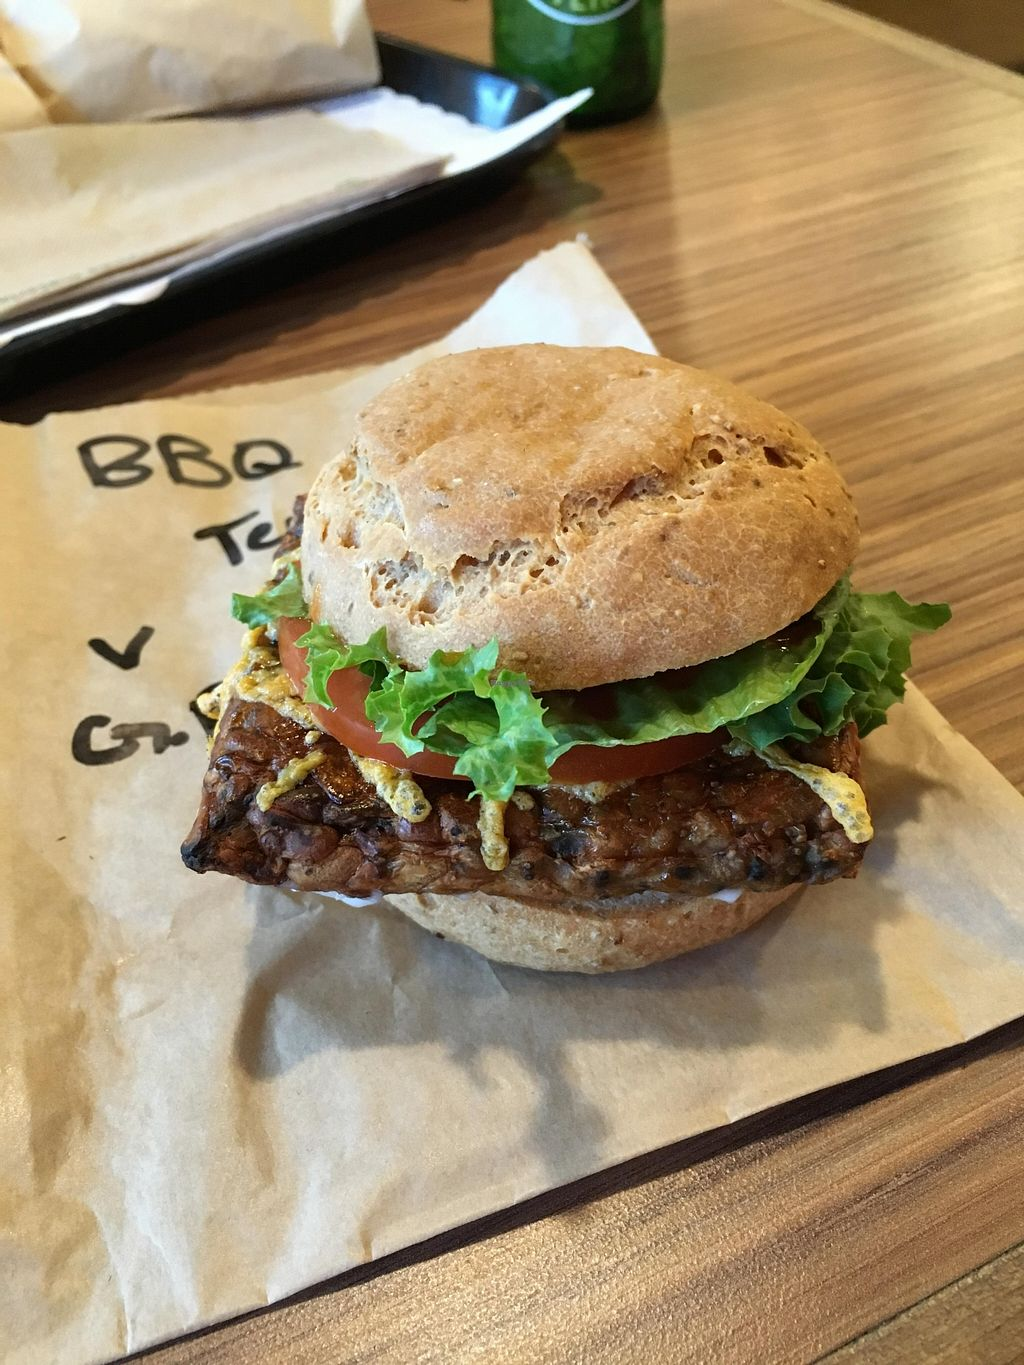 """Photo of Tera V Burger  by <a href=""""/members/profile/vegan%20frog"""">vegan frog</a> <br/>Gluten free tempeh burger <br/> April 9, 2016  - <a href='/contact/abuse/image/32519/143688'>Report</a>"""